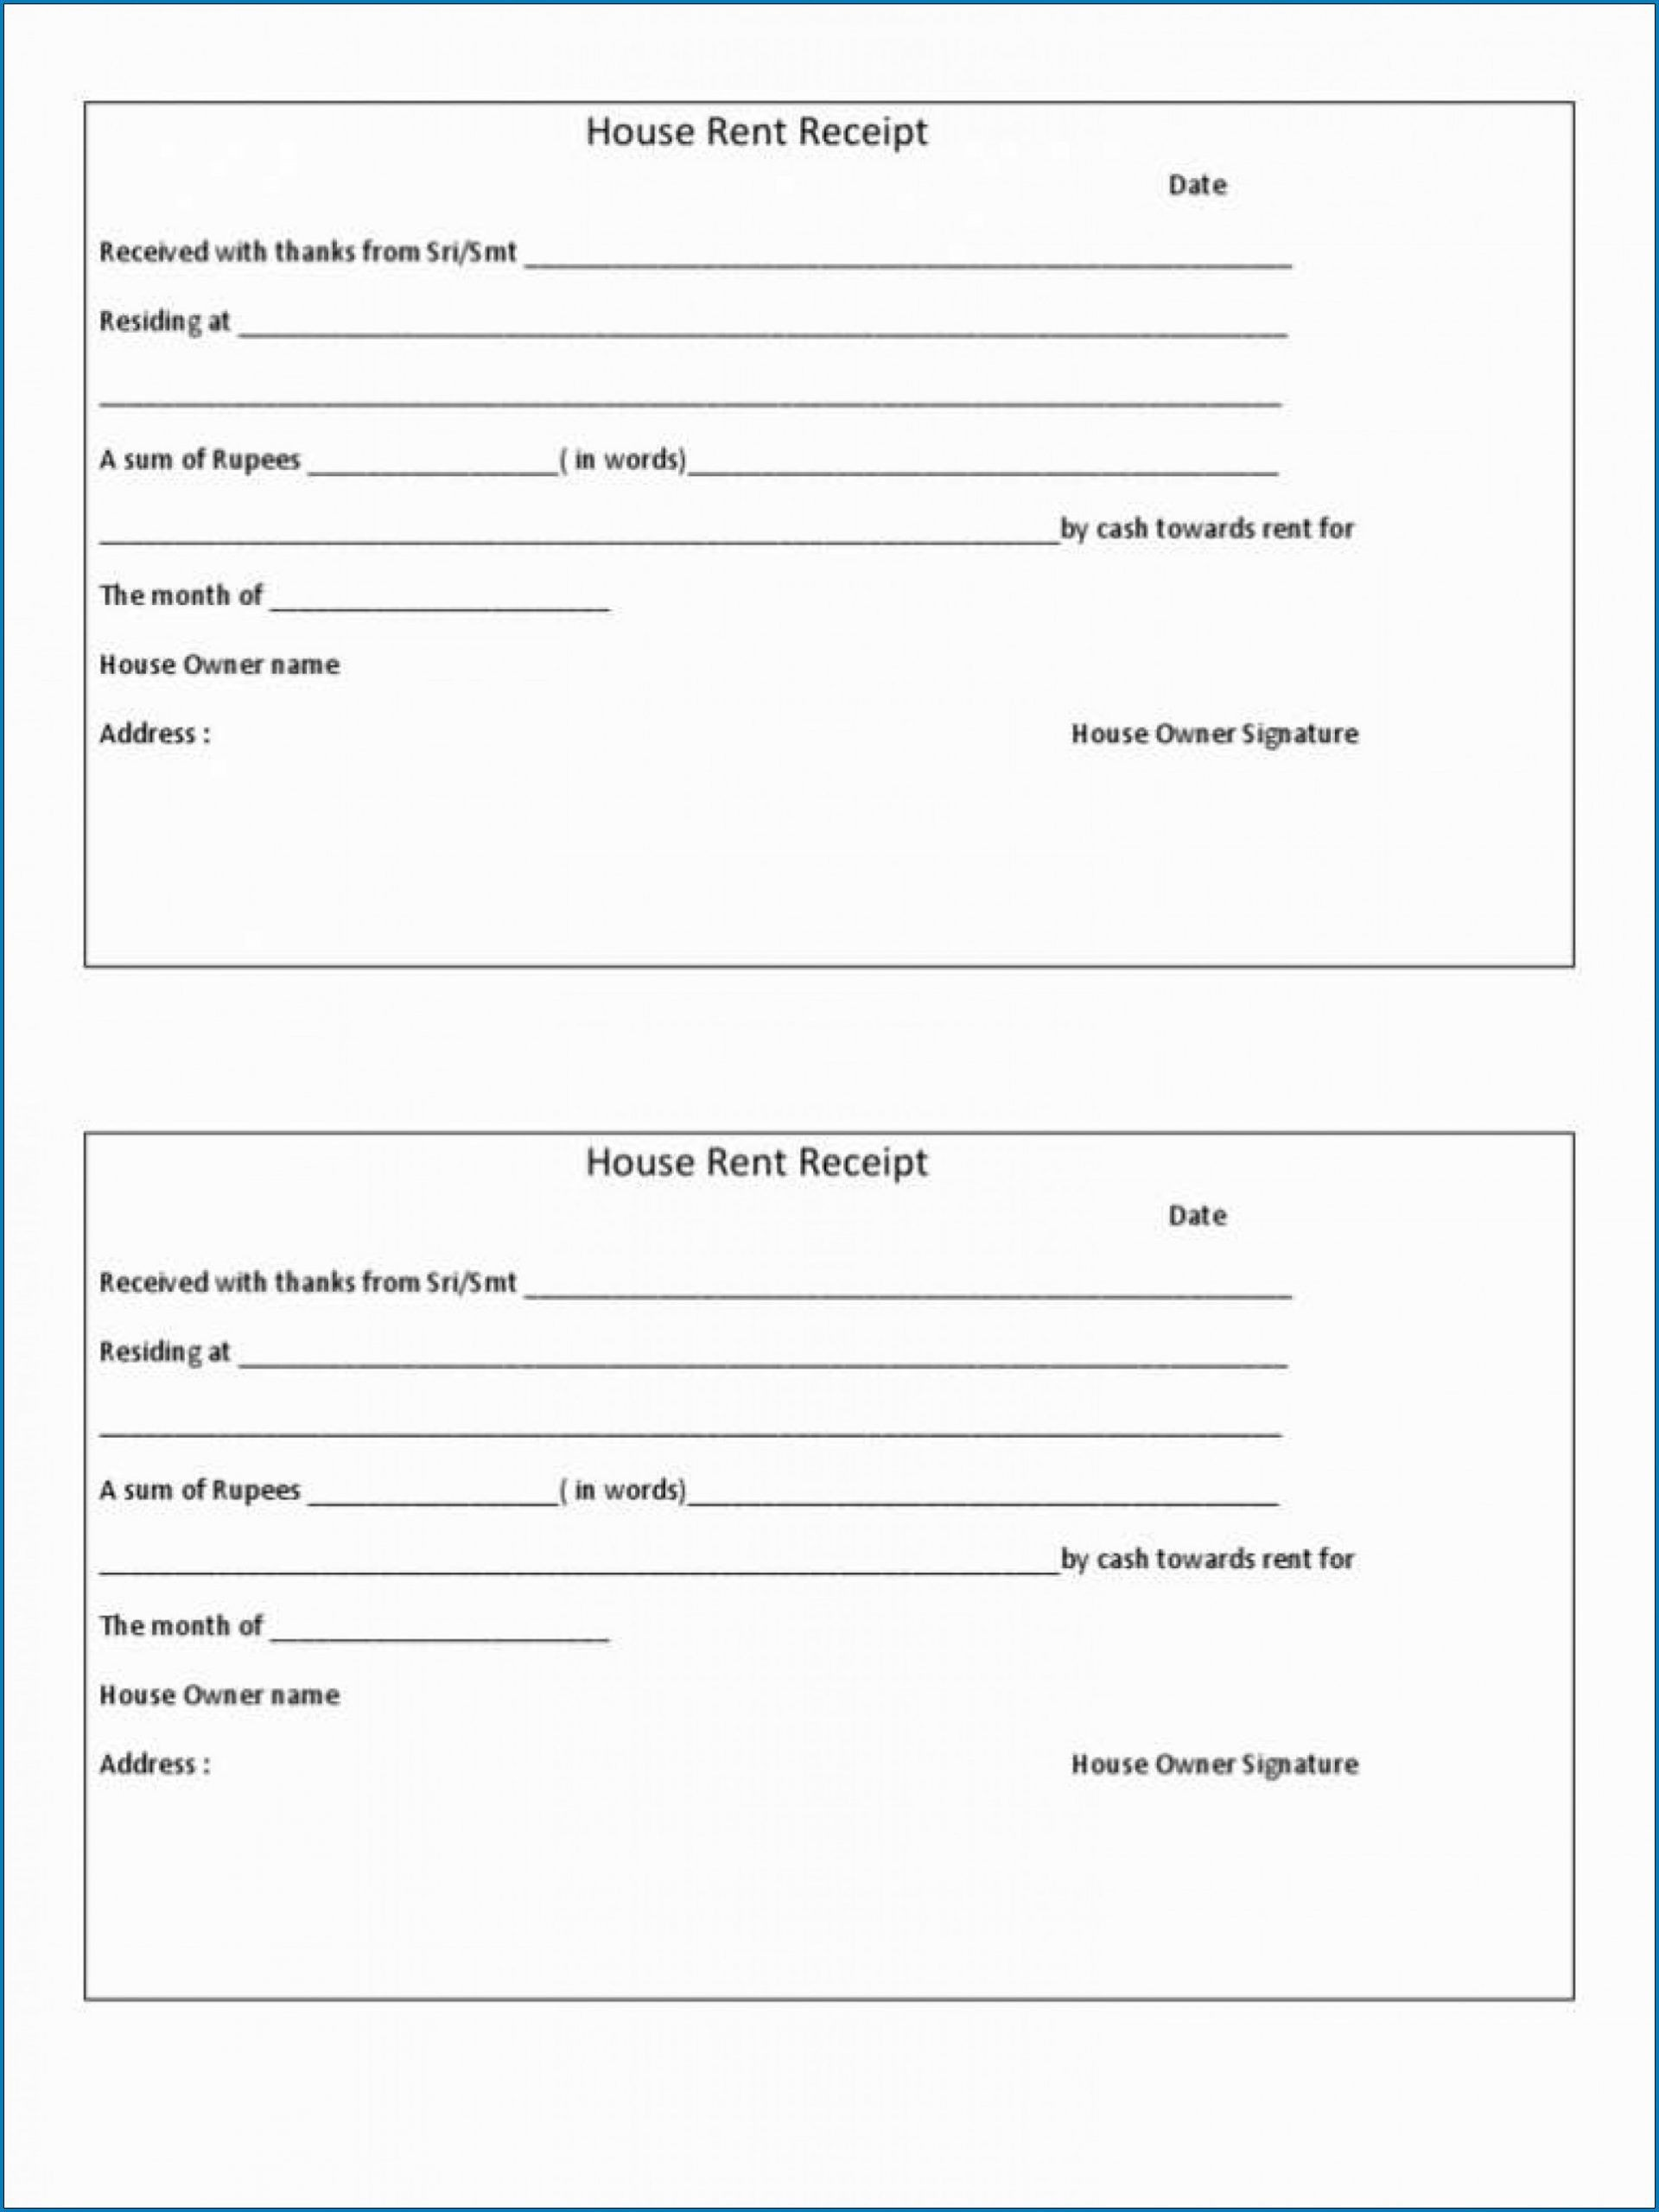 009 Stirring House Rent Receipt Sample Doc Design  Template India Bill Format Word Document Pdf Download1920